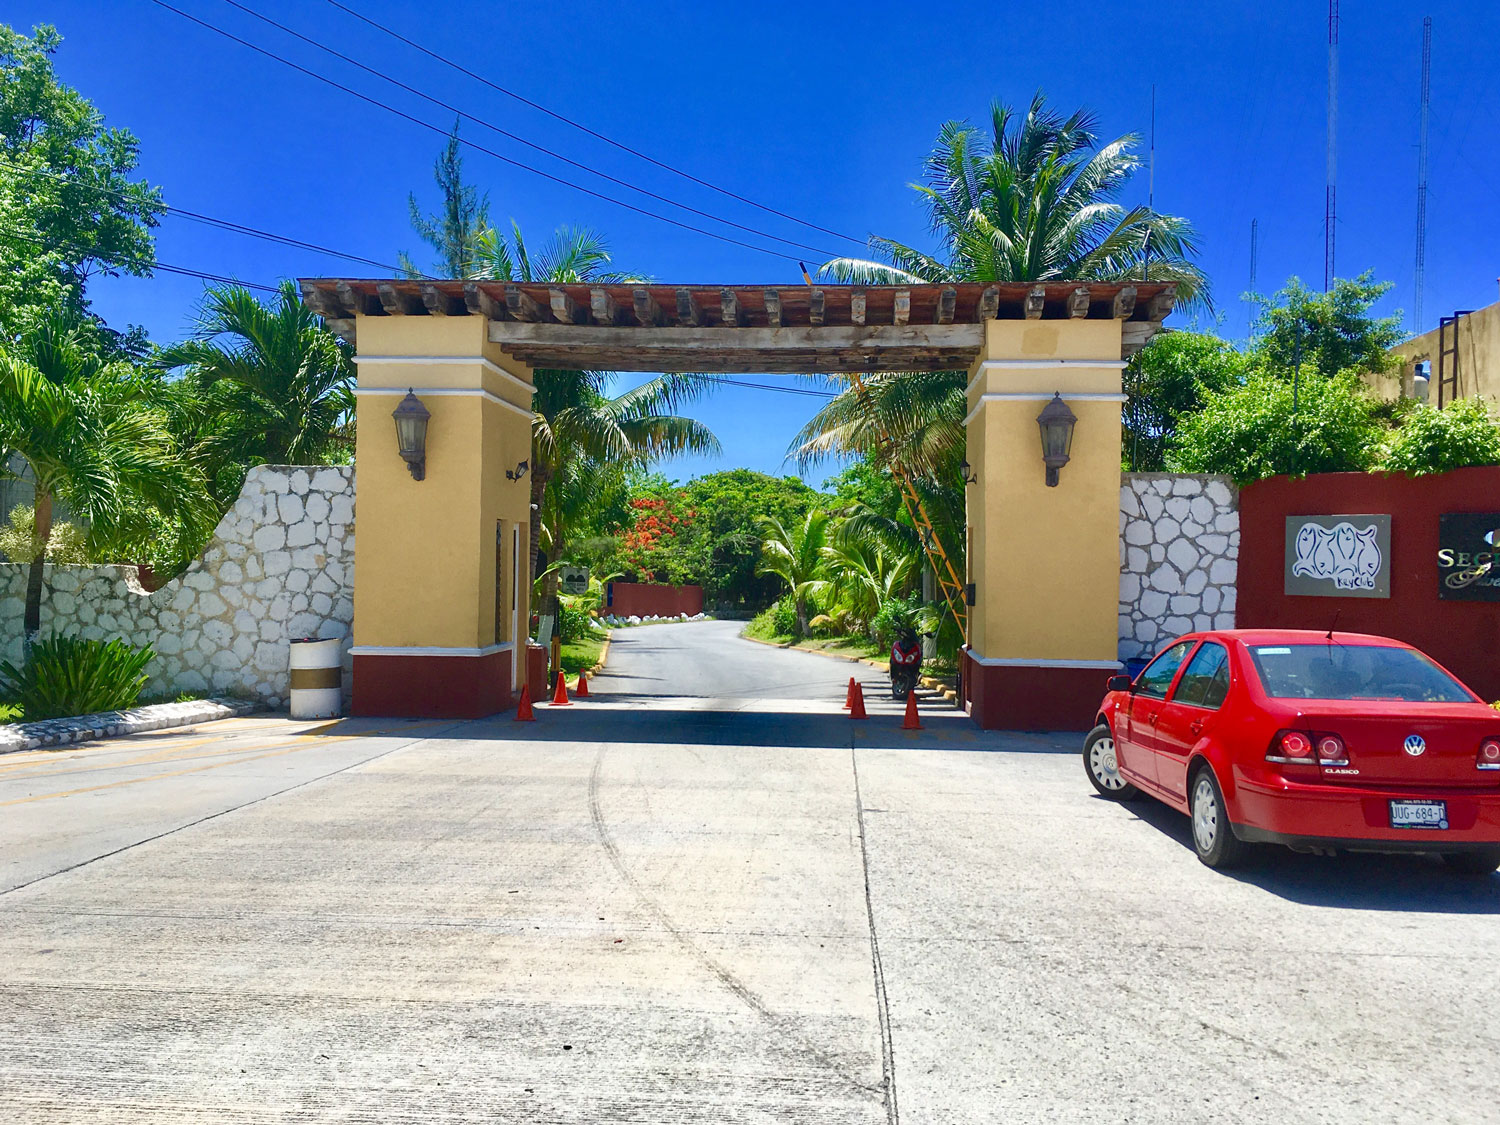 The entry gate to Bahía Petempich.